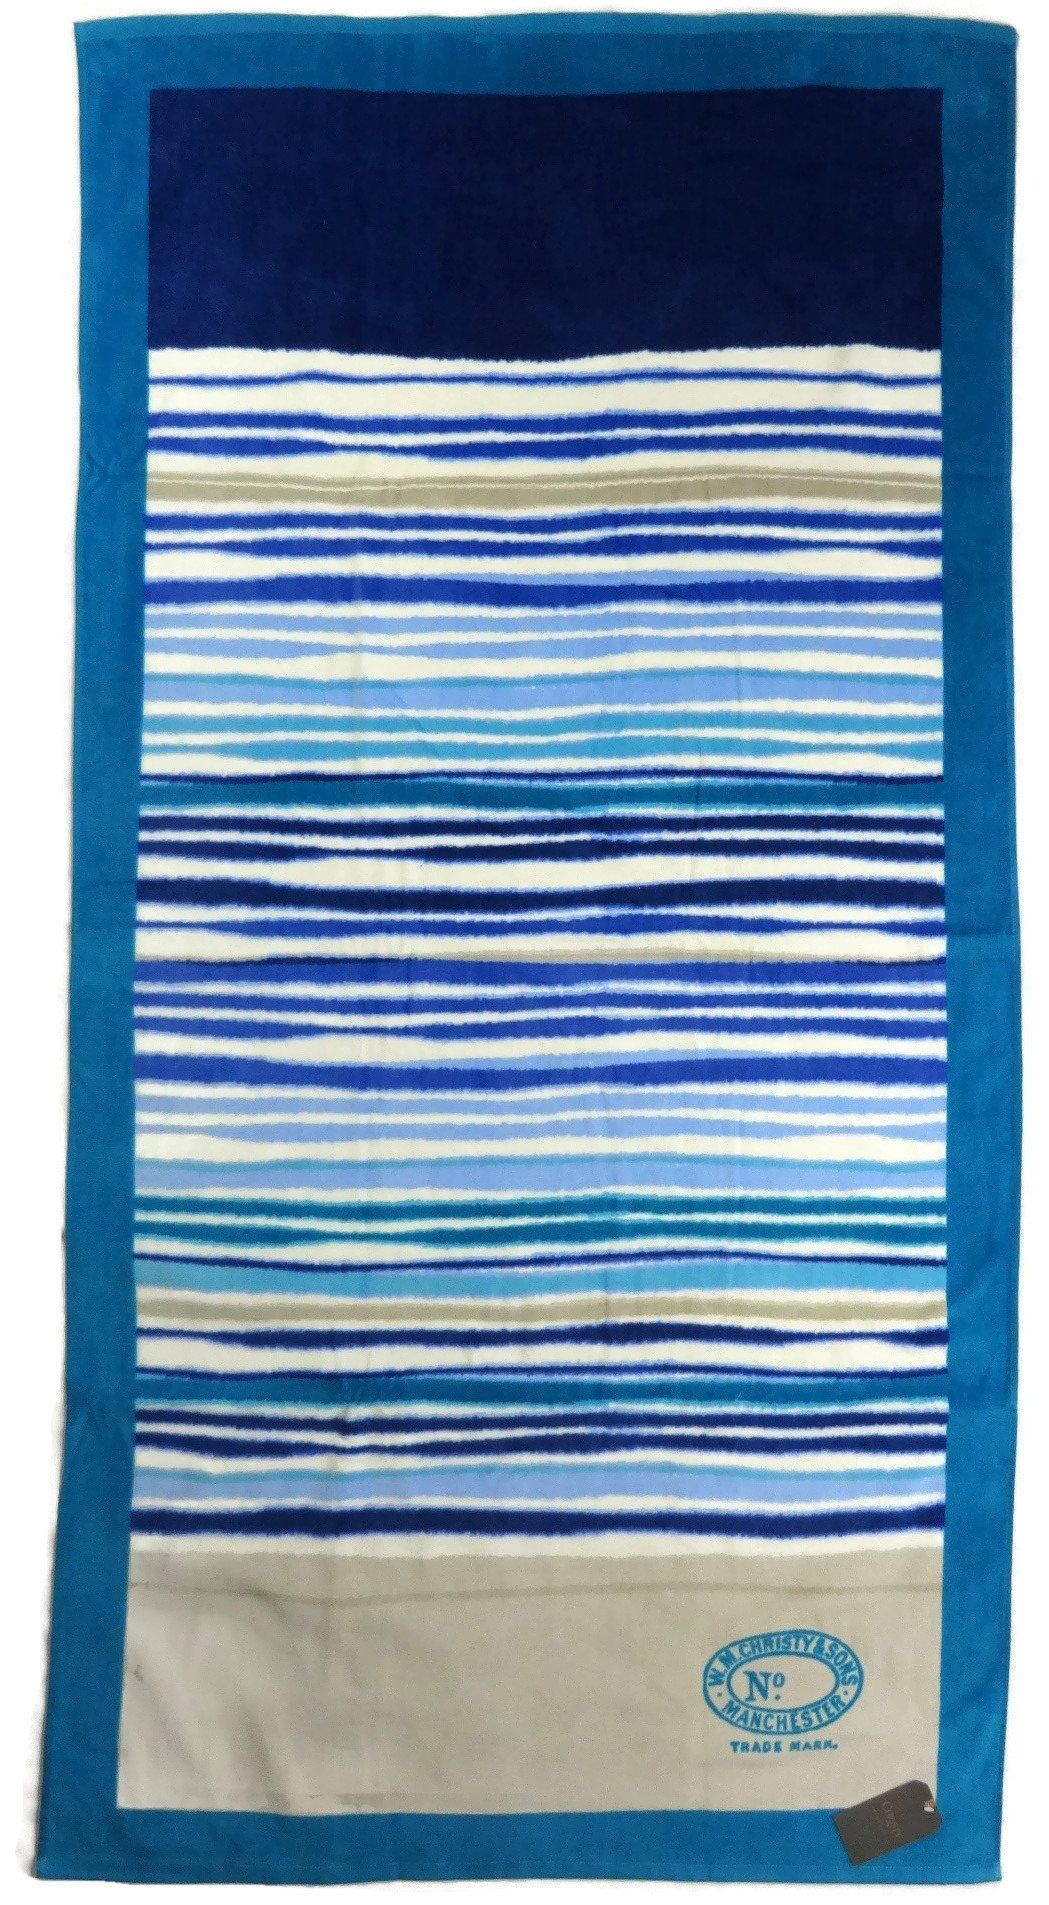 The Colors On This Towel Make Me Think Of Sand And Sea Beach Christy Haven Stripe Deep Blue Teal